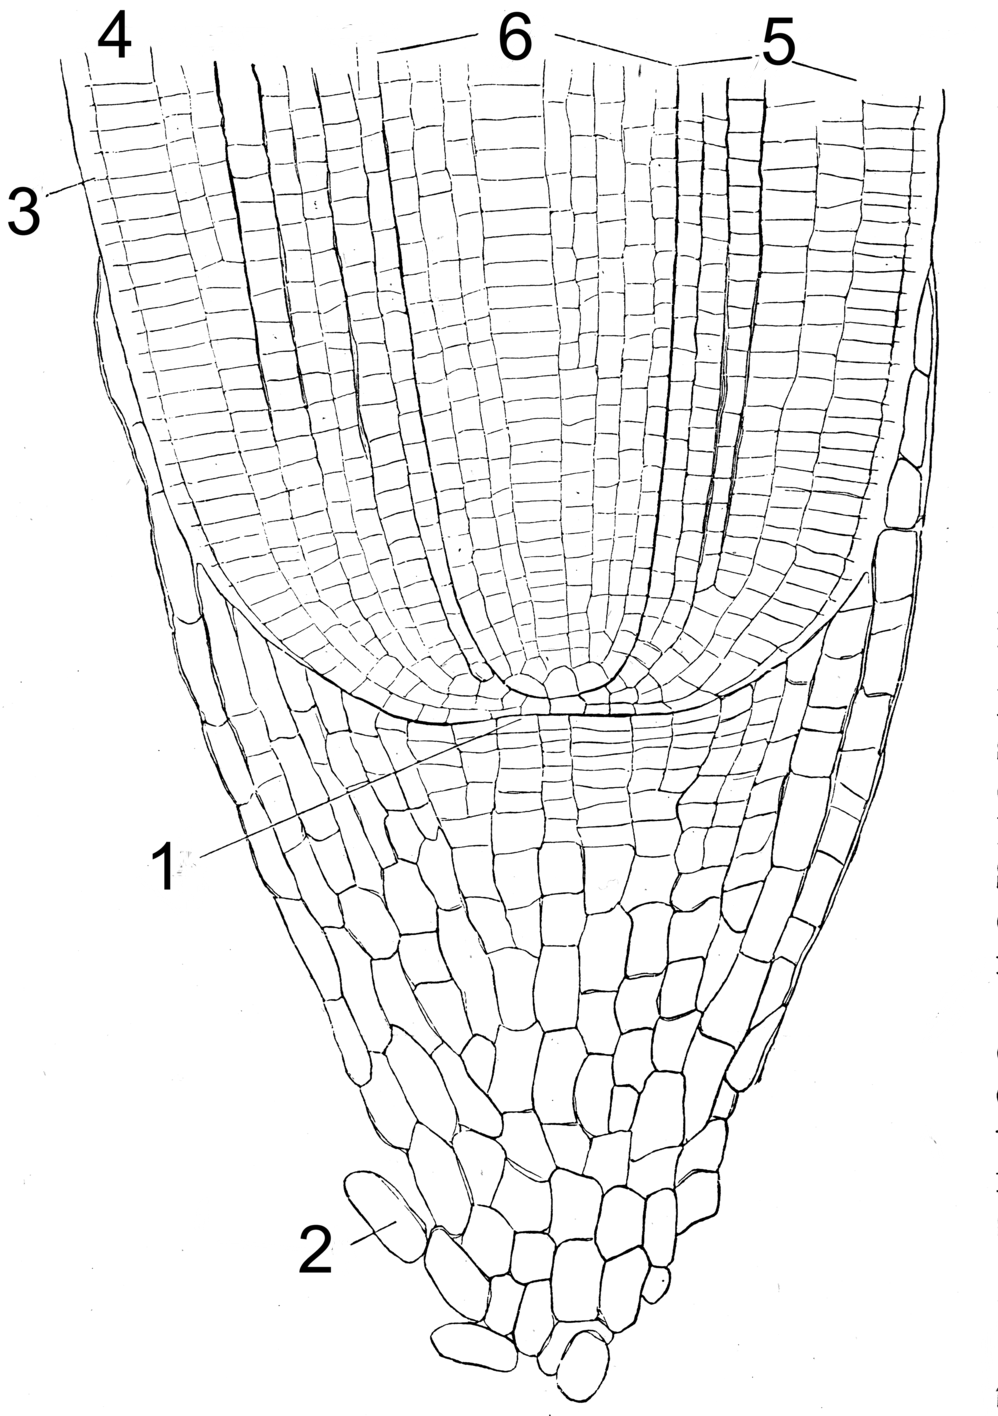 File:Root Tip Anatomy.png - Wikimedia Commons